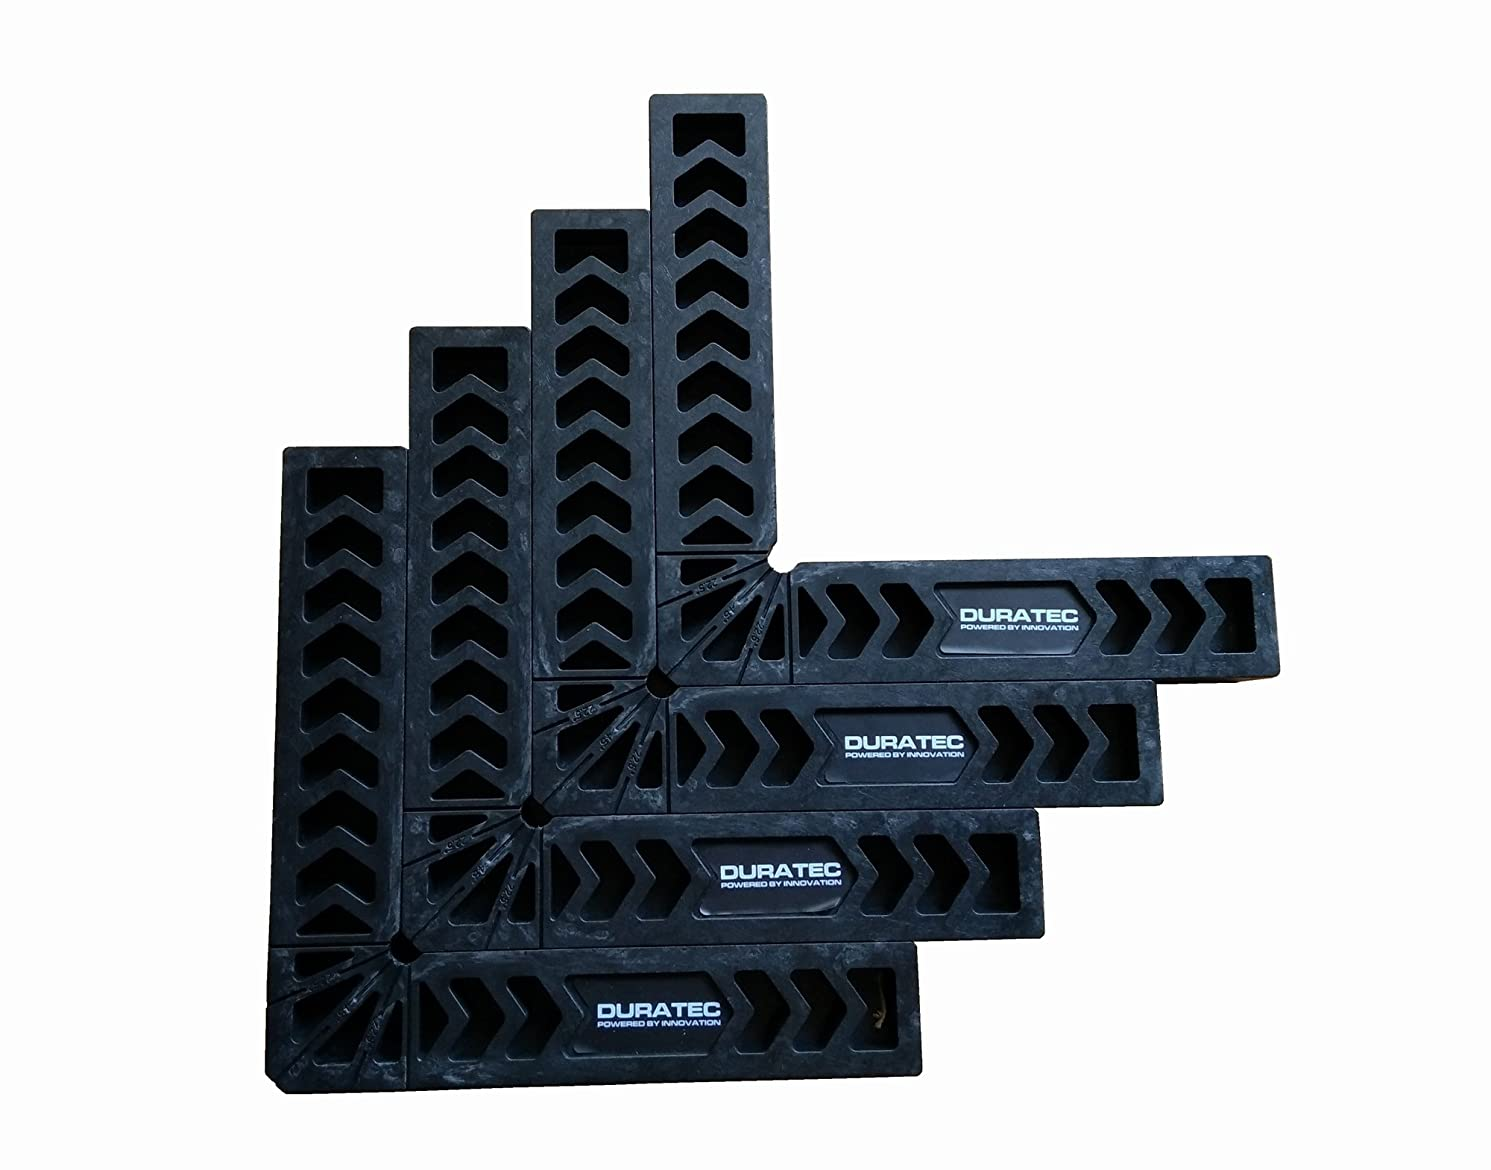 Duratec Positioning Squares, Woodworking Tool, Clamping 90 Degree Angles for Picture Frames, Boxes, Cabinets or Drawers (8 Inch Set of 4, Black)